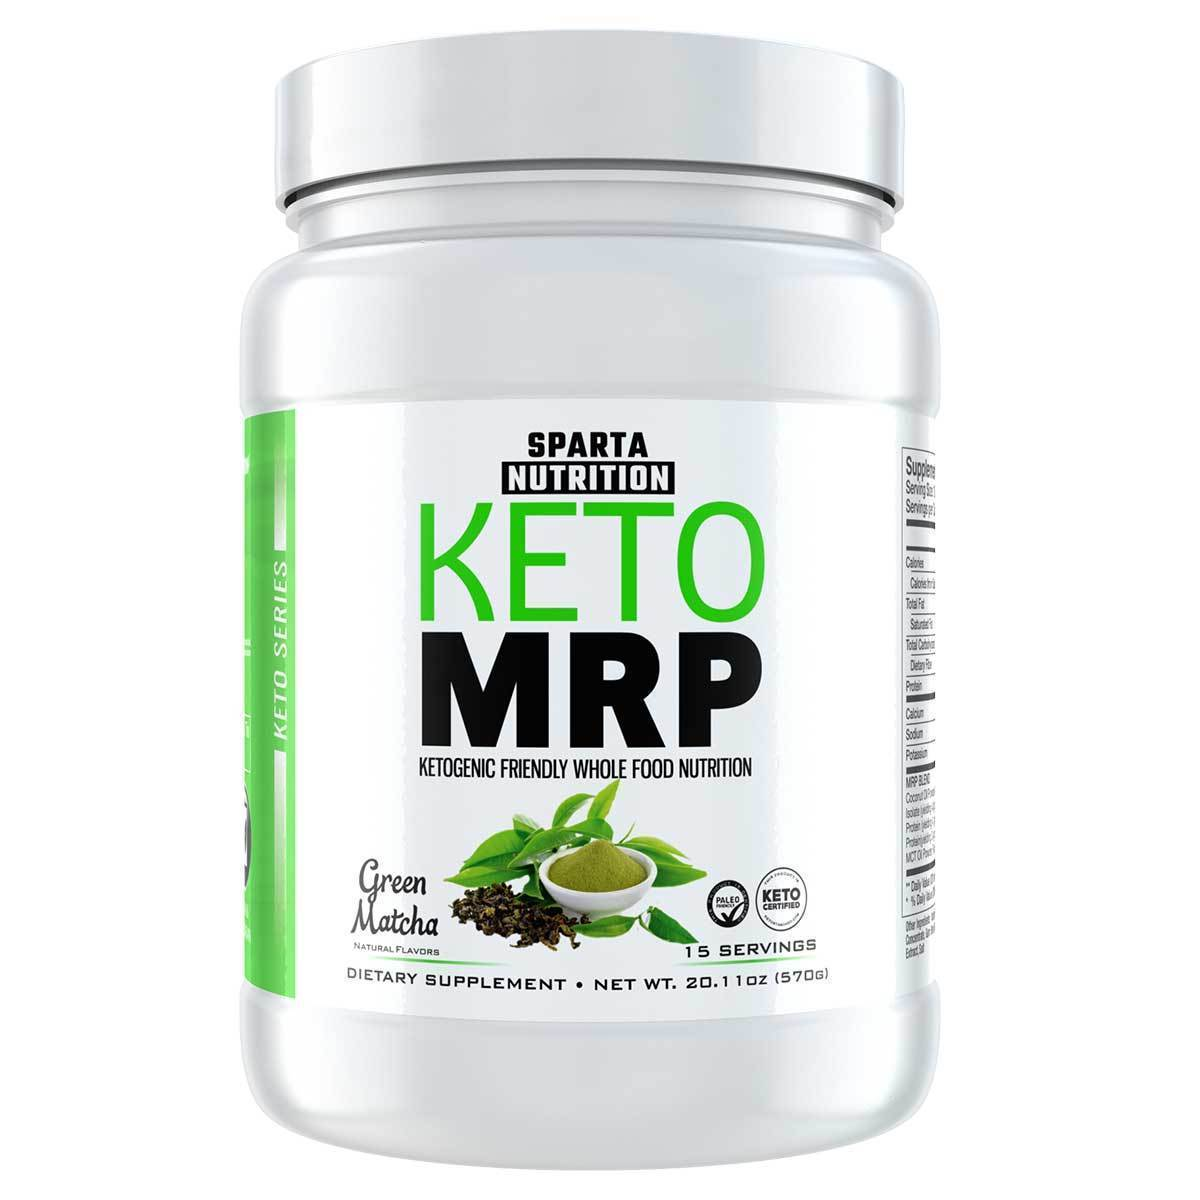 Sparta Nutrition Keto MRP Green Matcha 15 Servings Meal Replacement Powders Sparta Nutrition  (1515714674731)